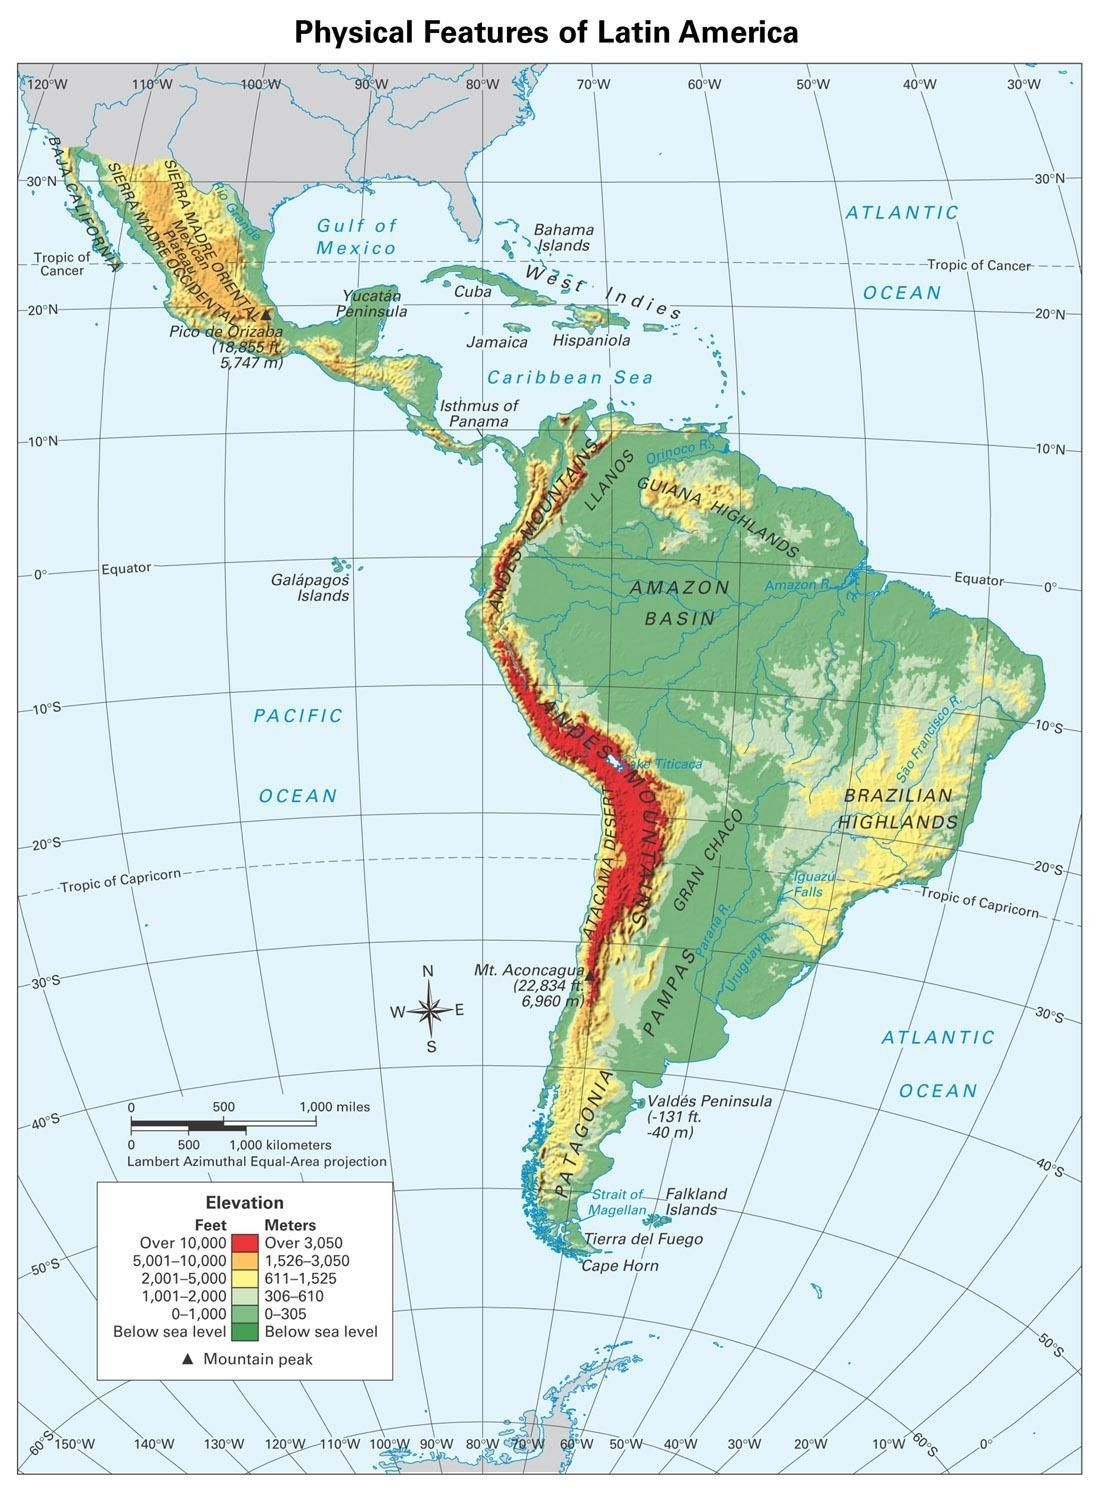 Physical Features Latin America Map South America Physical Features Map Blank | Latin america map